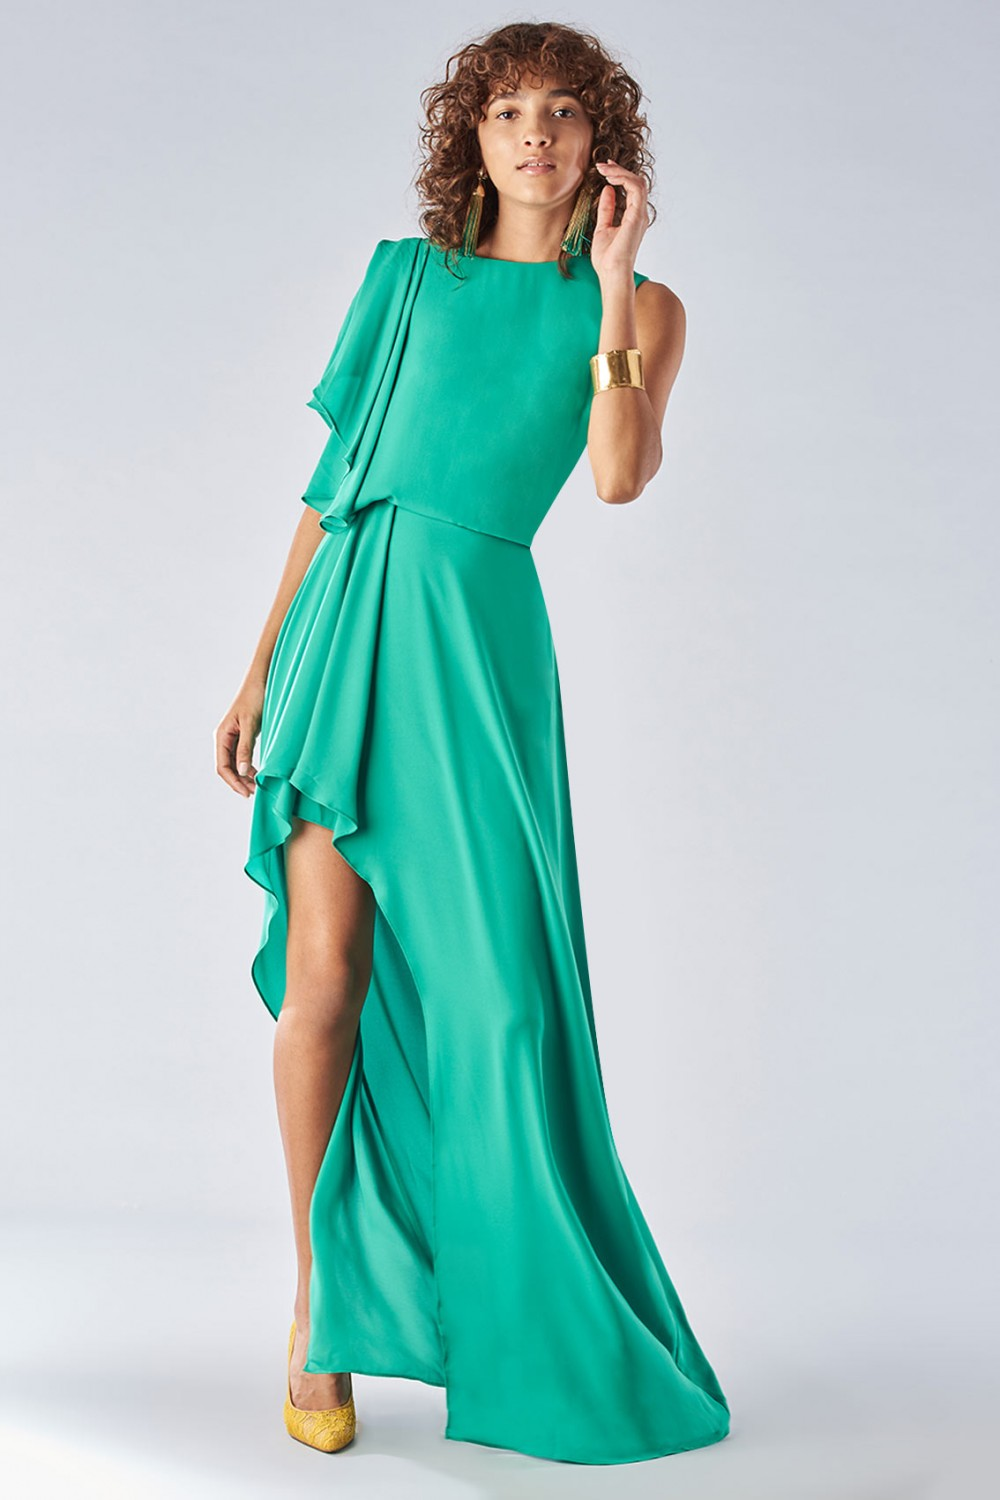 Green dress with slit